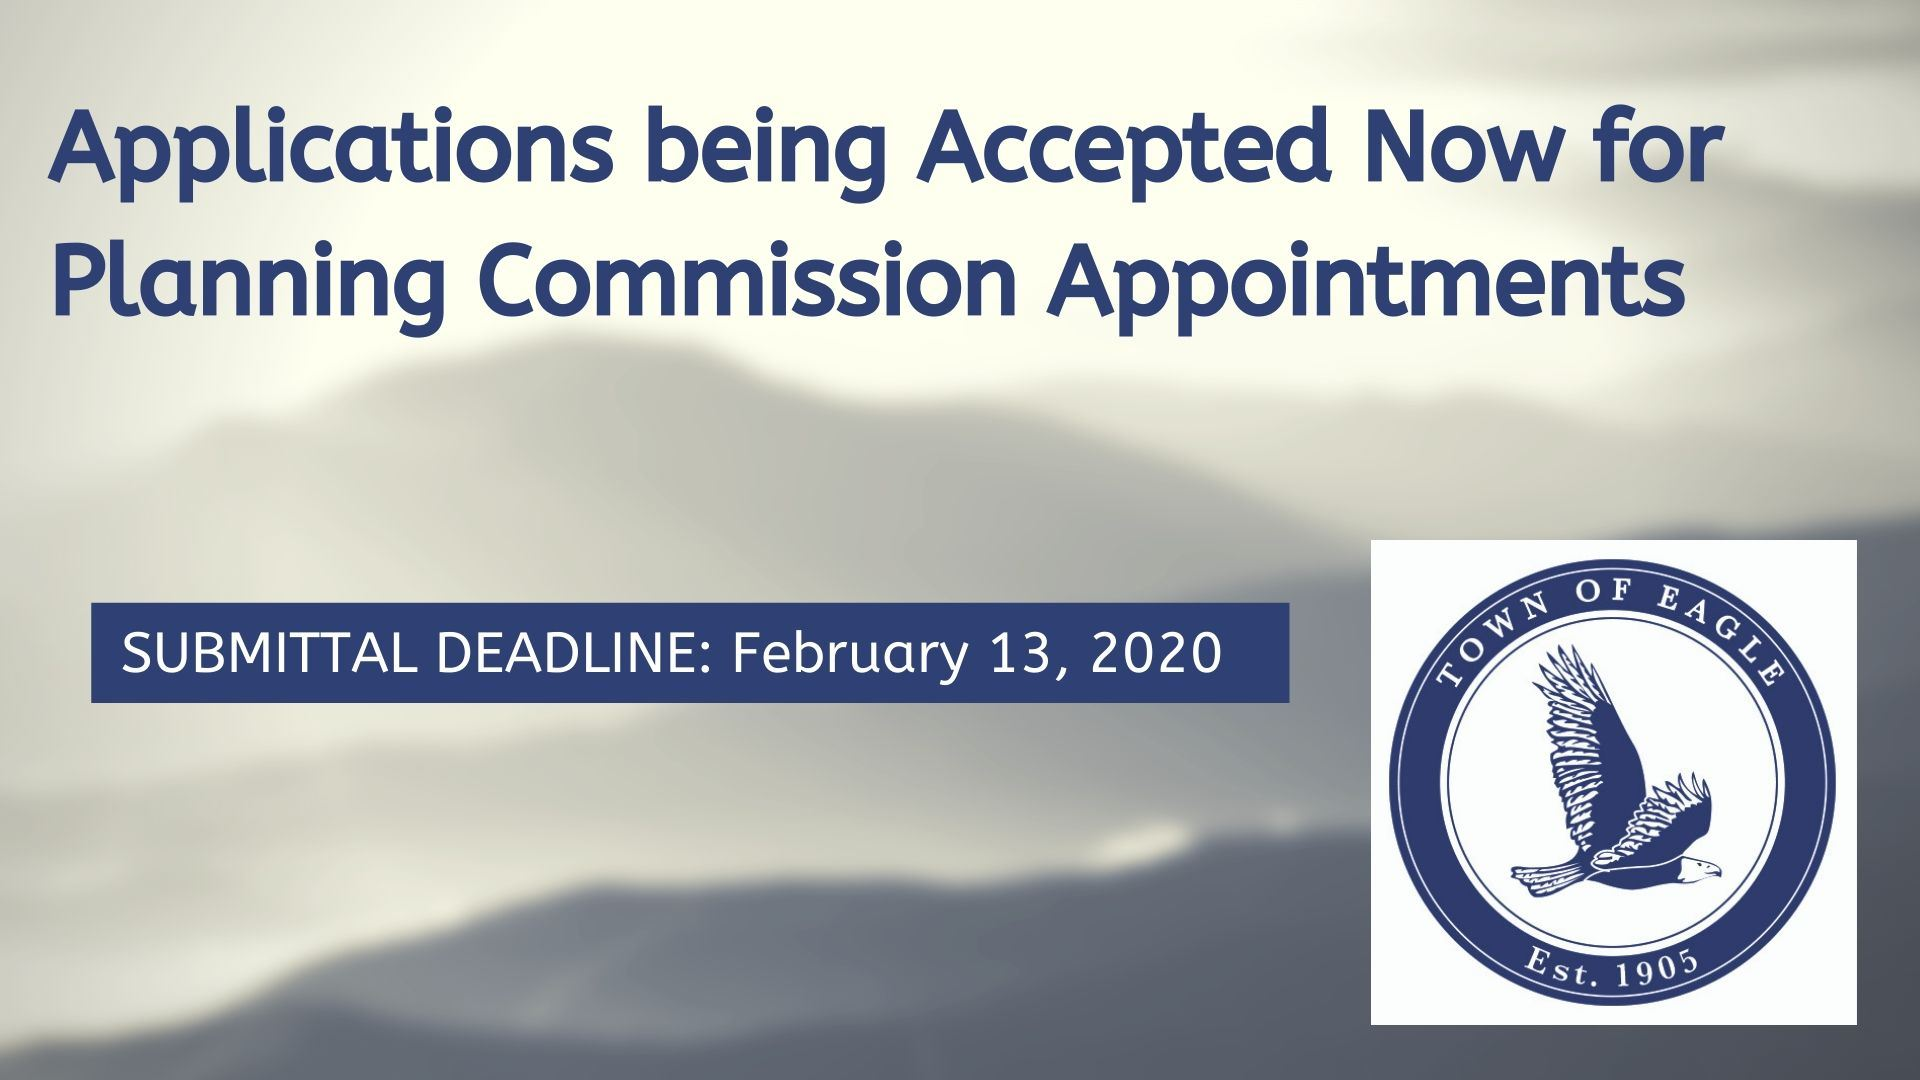 Applications being Accepted Now for Charter Commission Appointment (1)